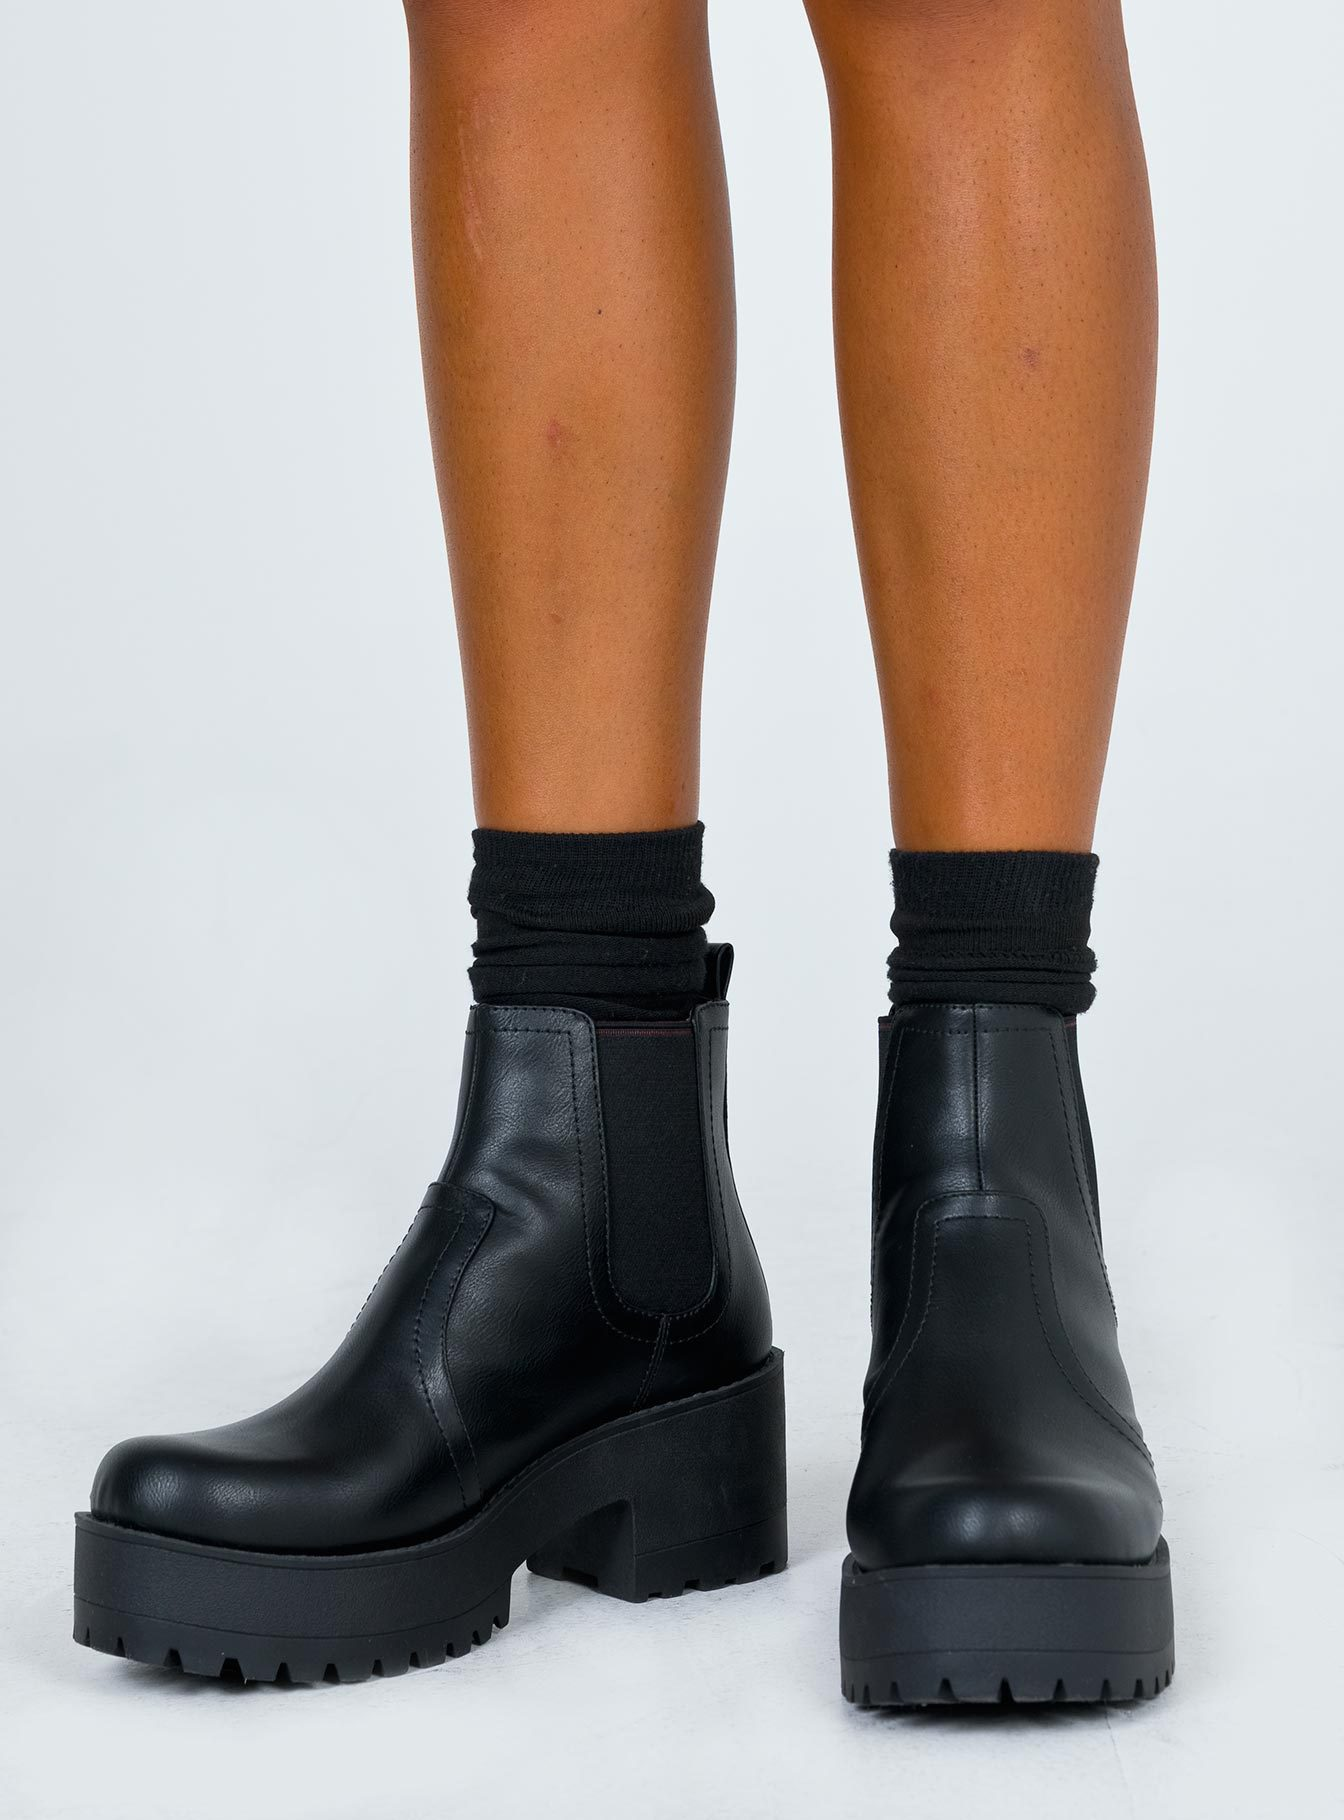 Boots (Side B)